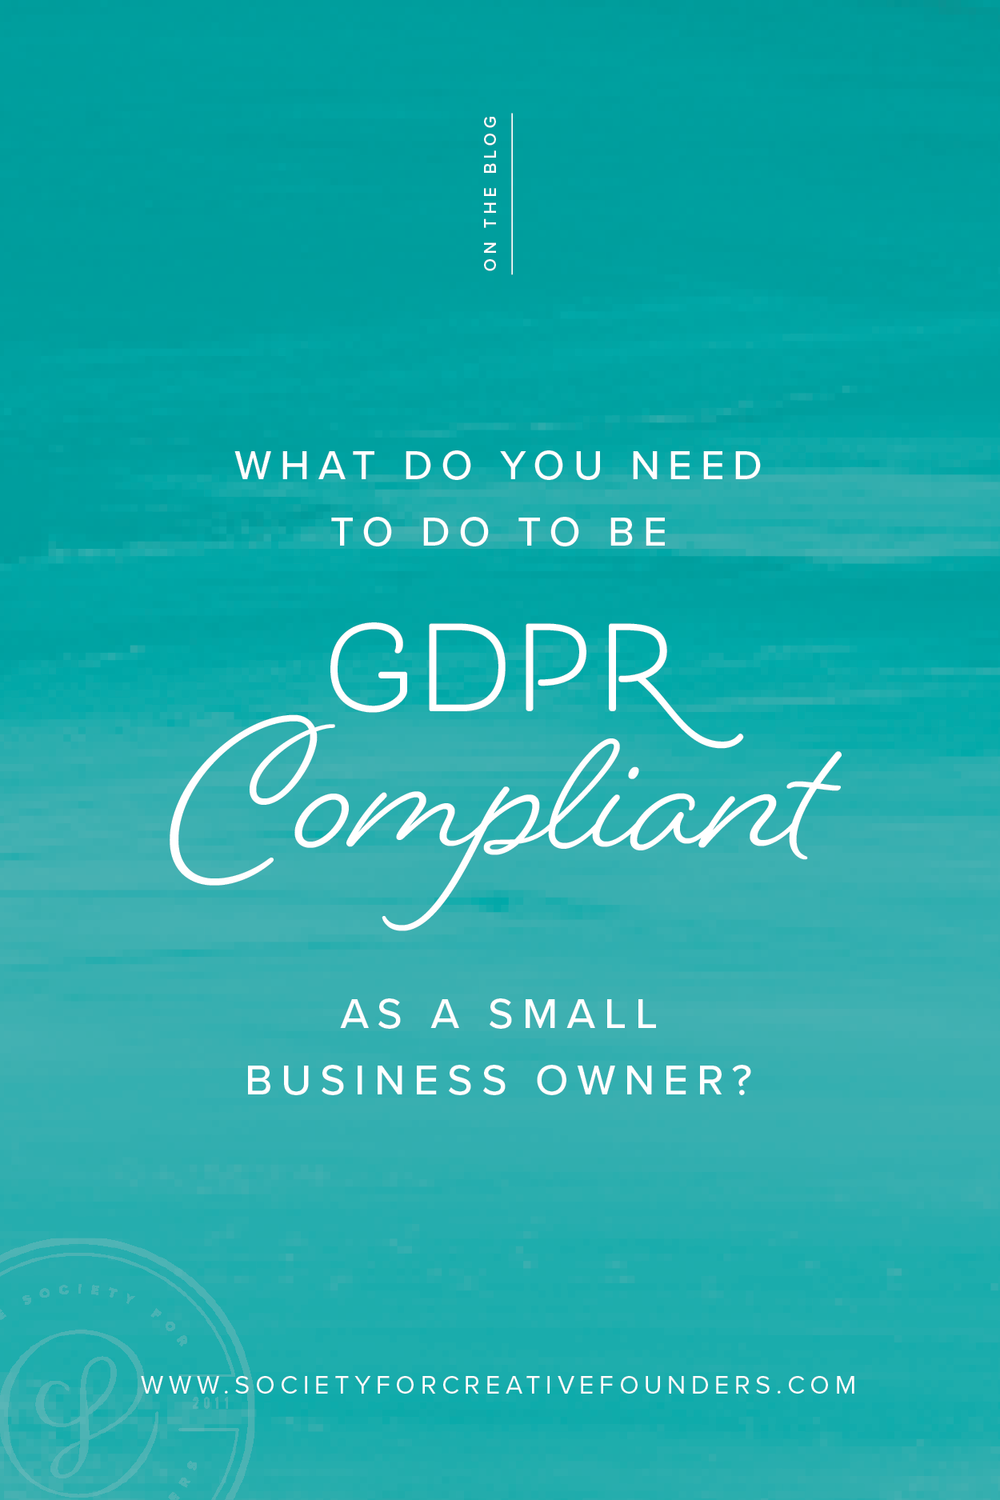 GDPR Compliance for Small Business owners by the Society for Creative Founders